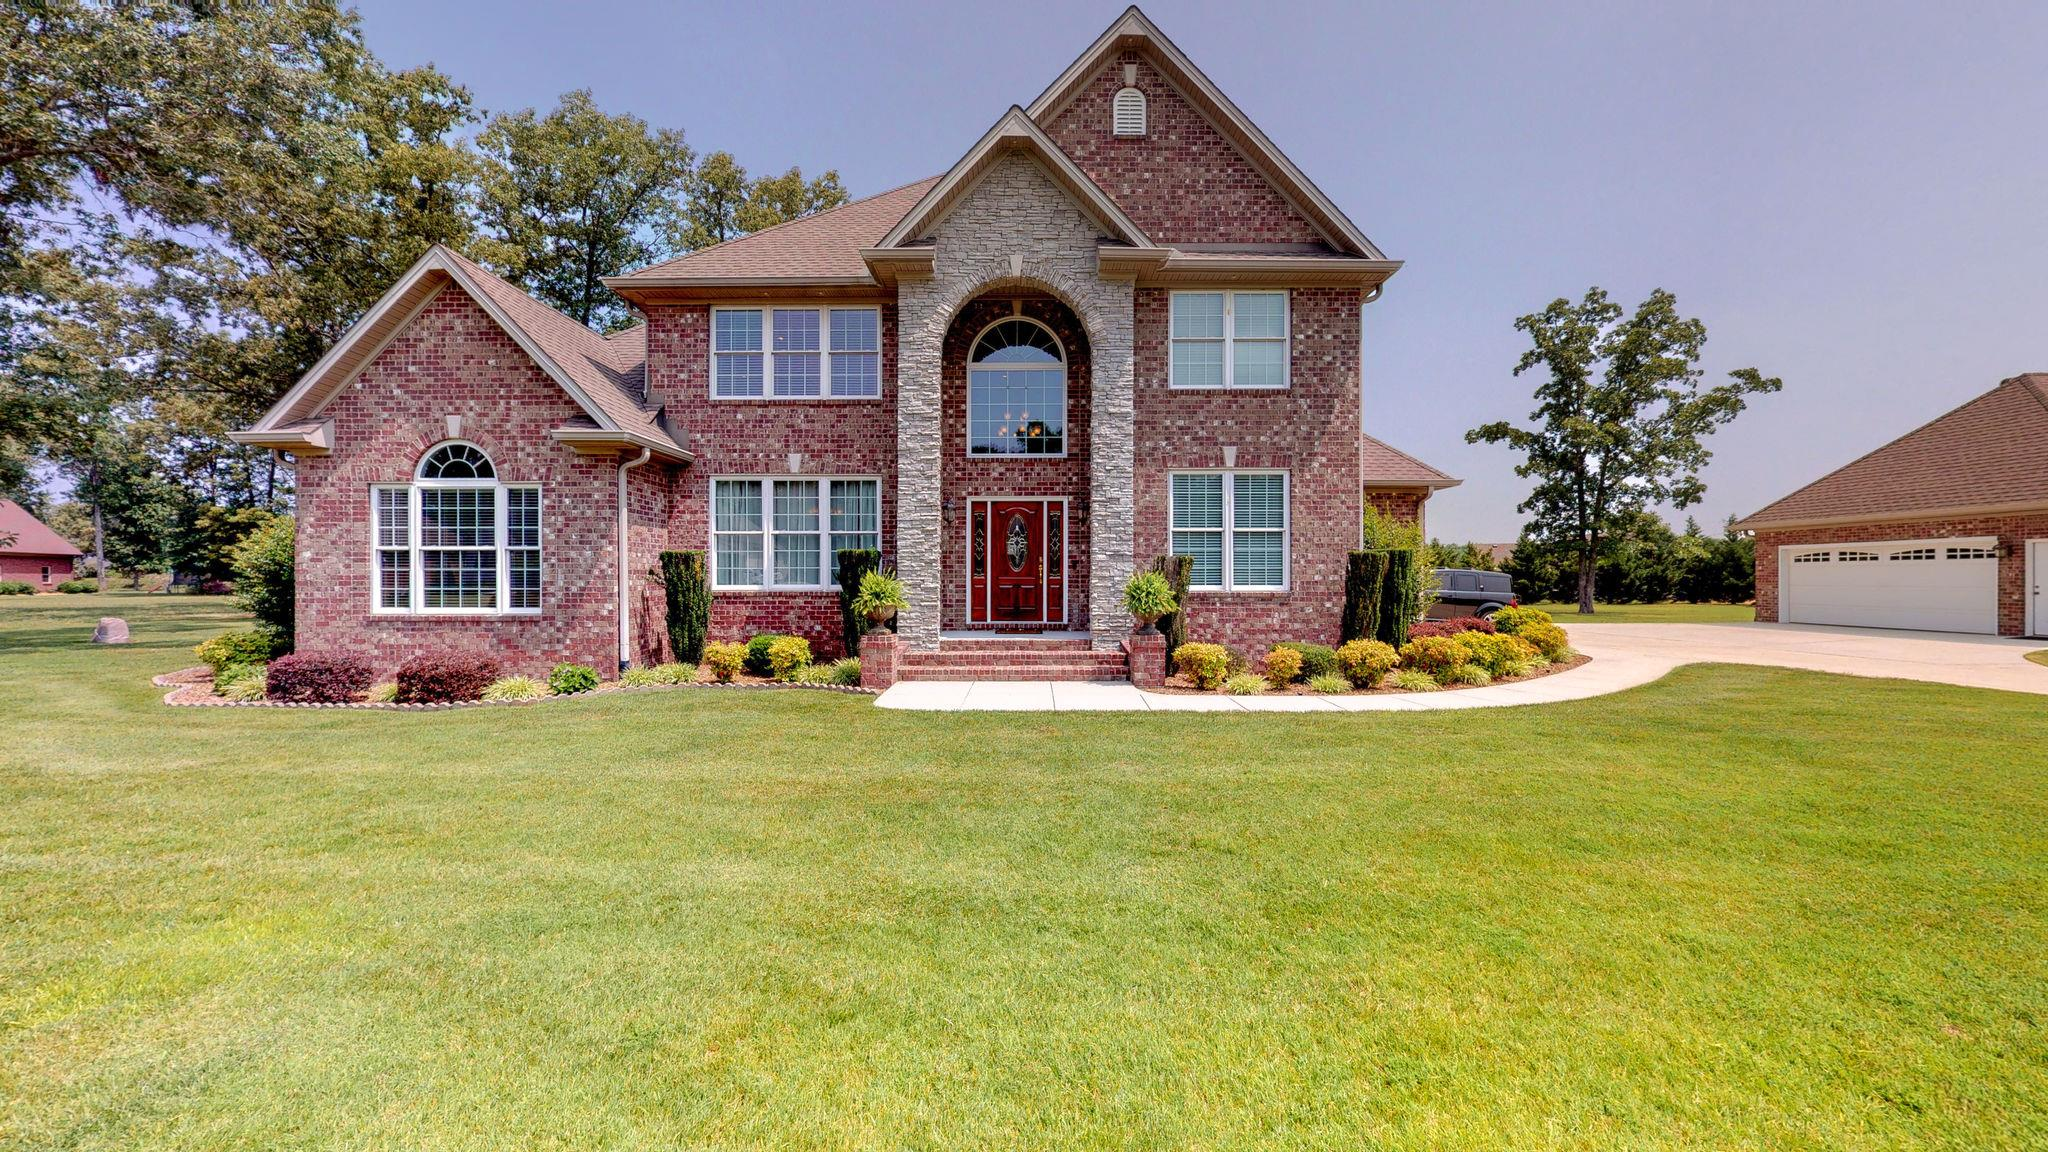 422 Heritage Cir, Manchester, TN 37355 - Manchester, TN real estate listing